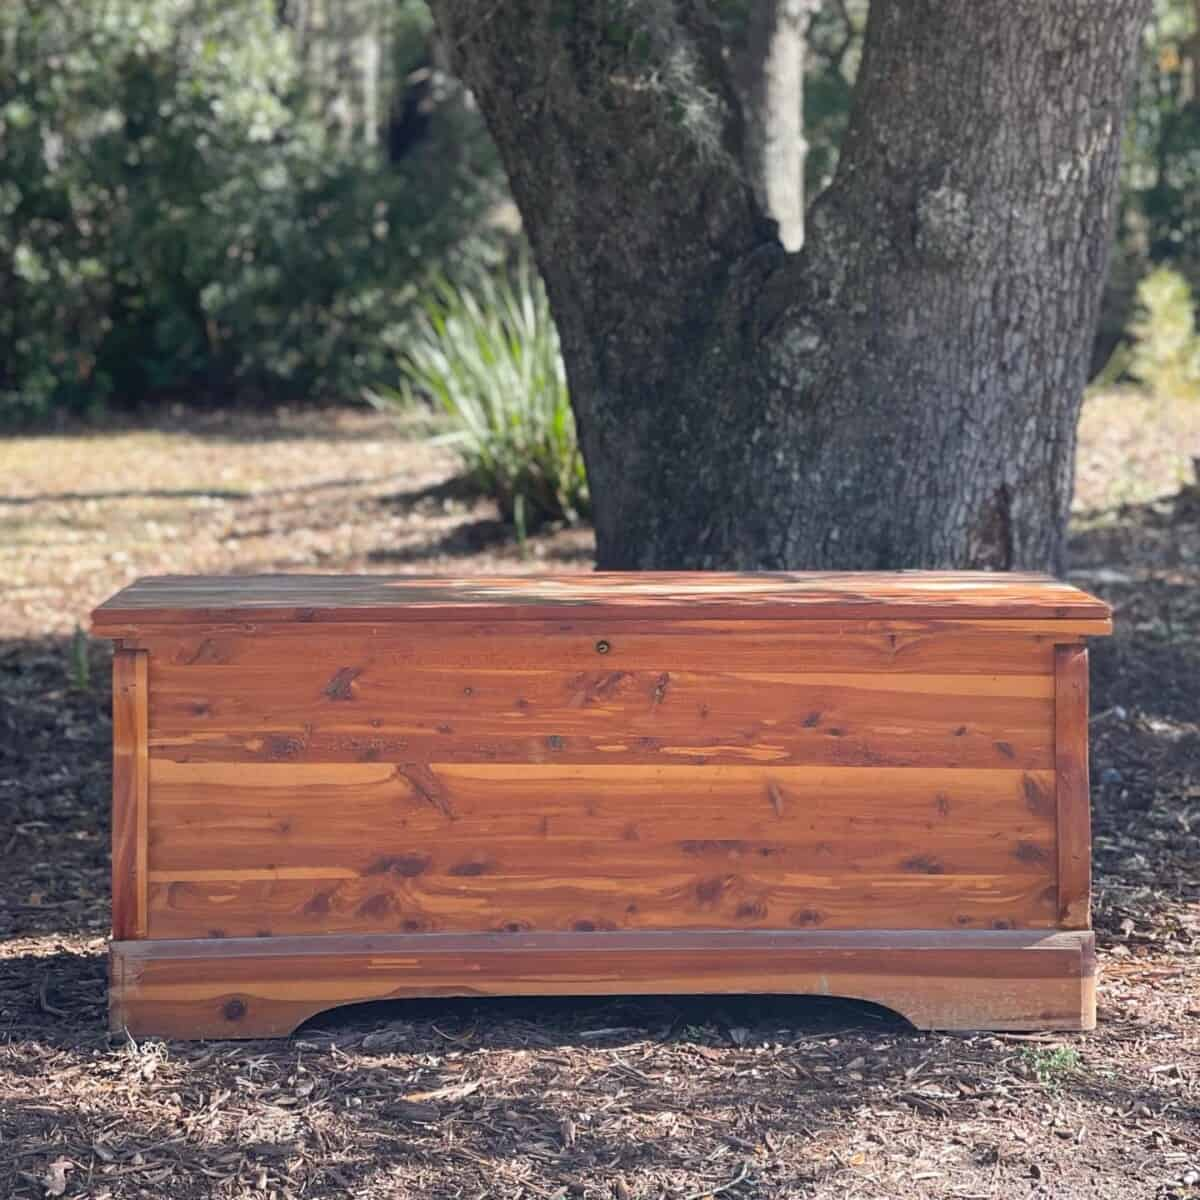 Refinishing a cedar lane hope chest from orange and red wood tones to a natural whitewashed color.